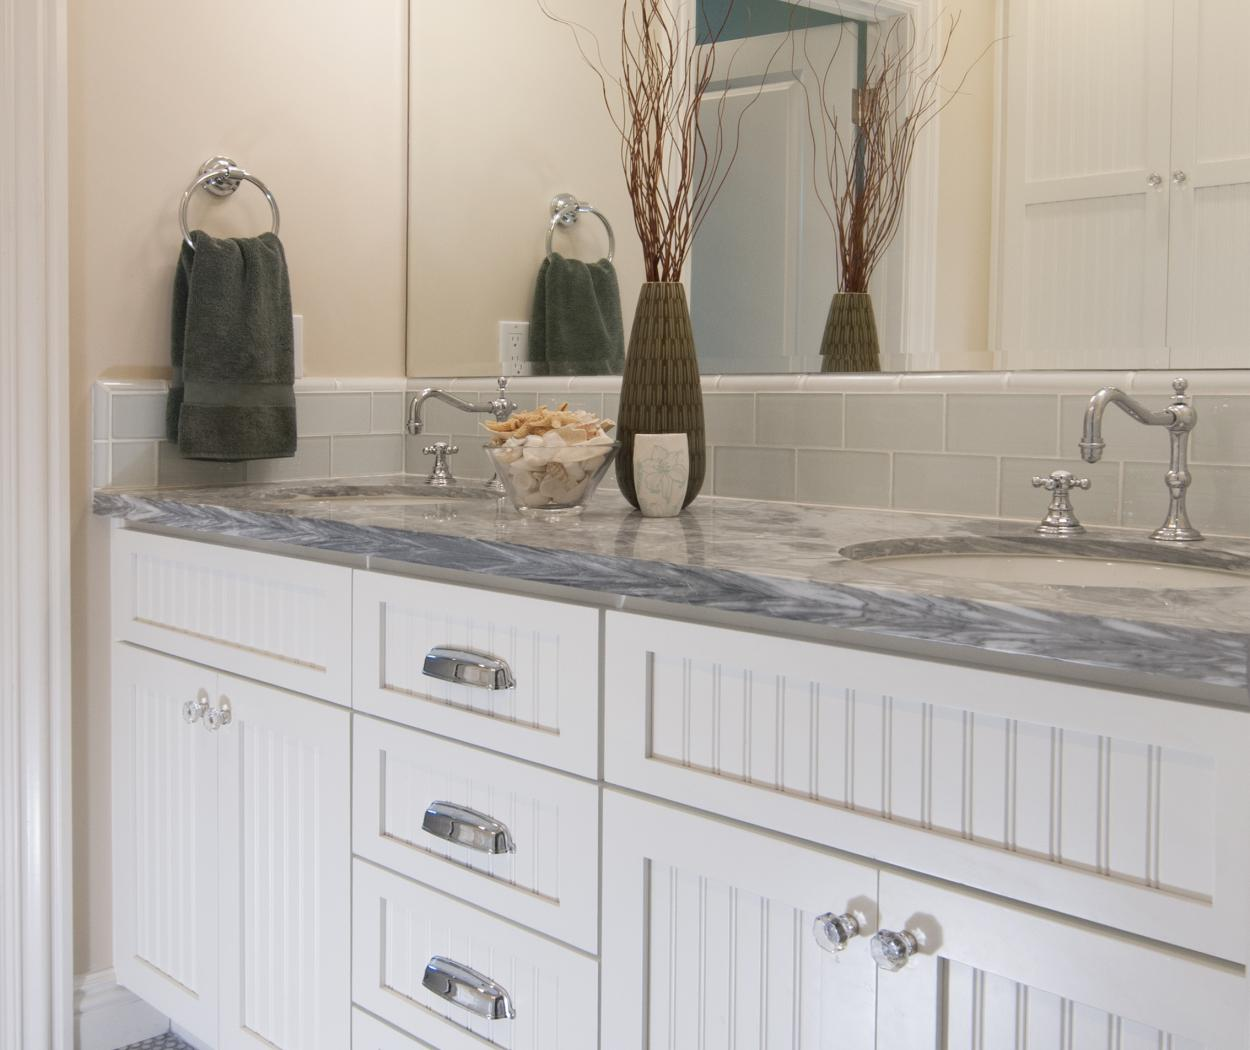 Transitional White Bathroom Vanity with Beadboard Doors, Silver Hardware, Marble Counter Top and Double Sinks